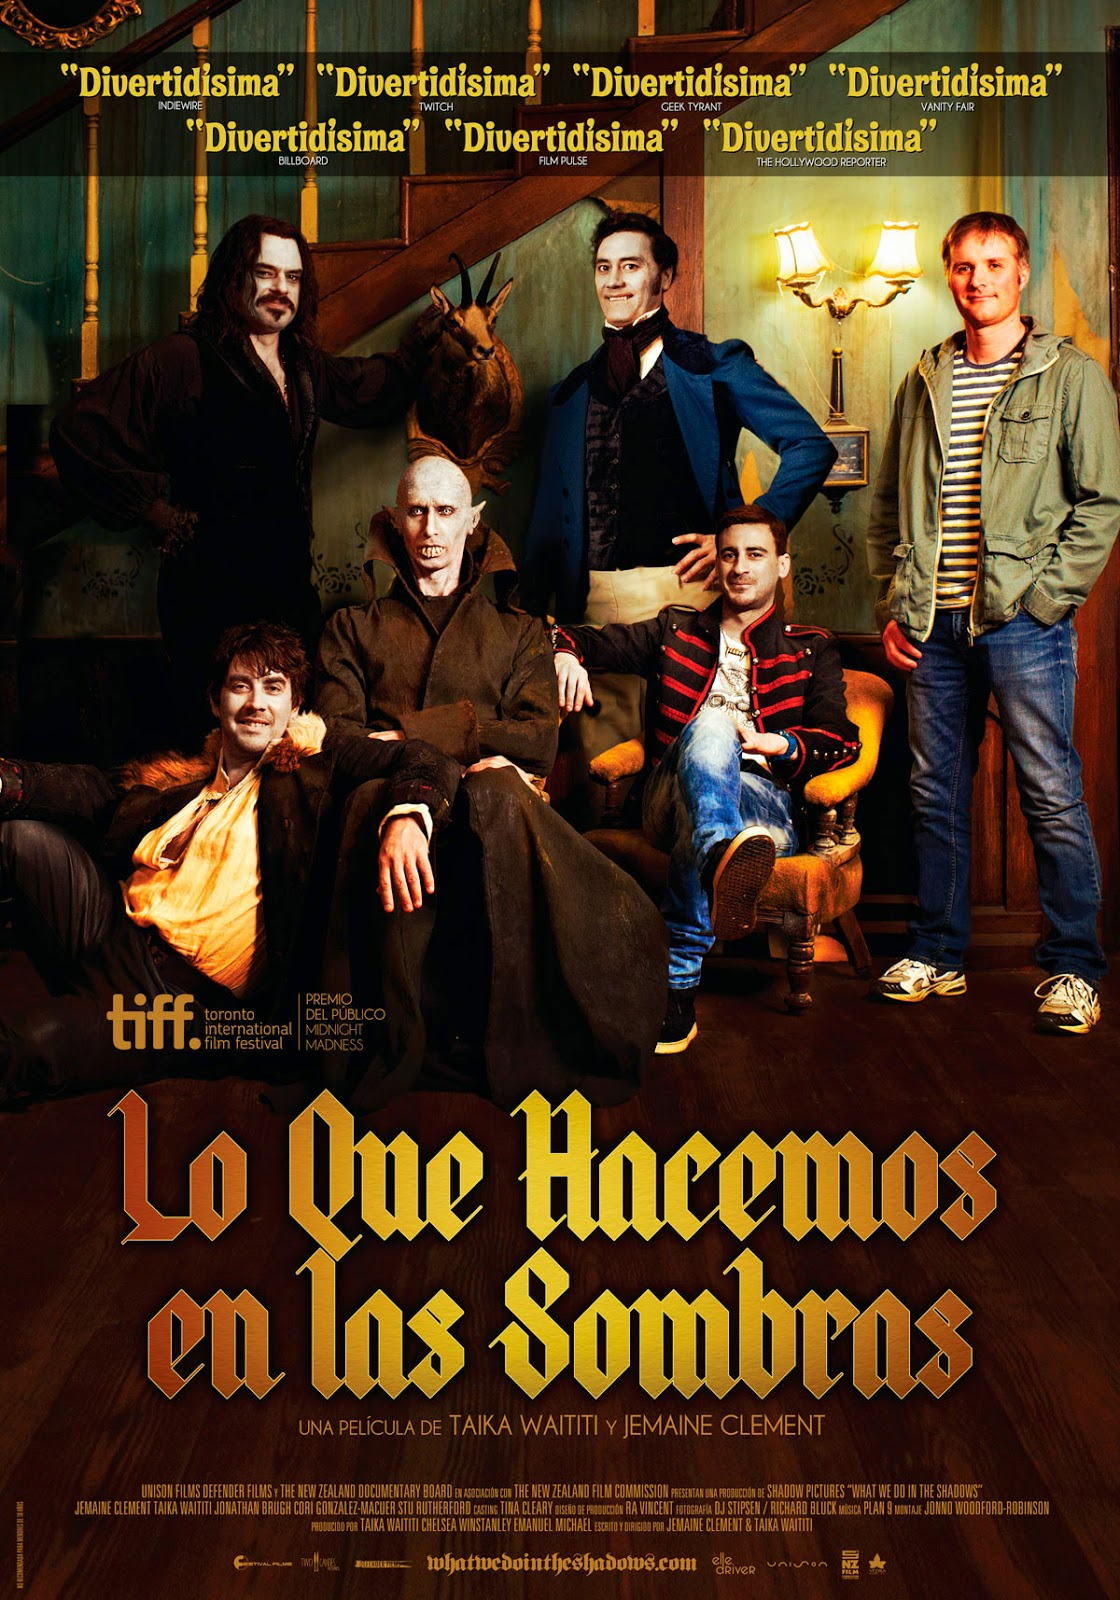 Lo que hacemos en las sombras (What We Do in the Shadows)